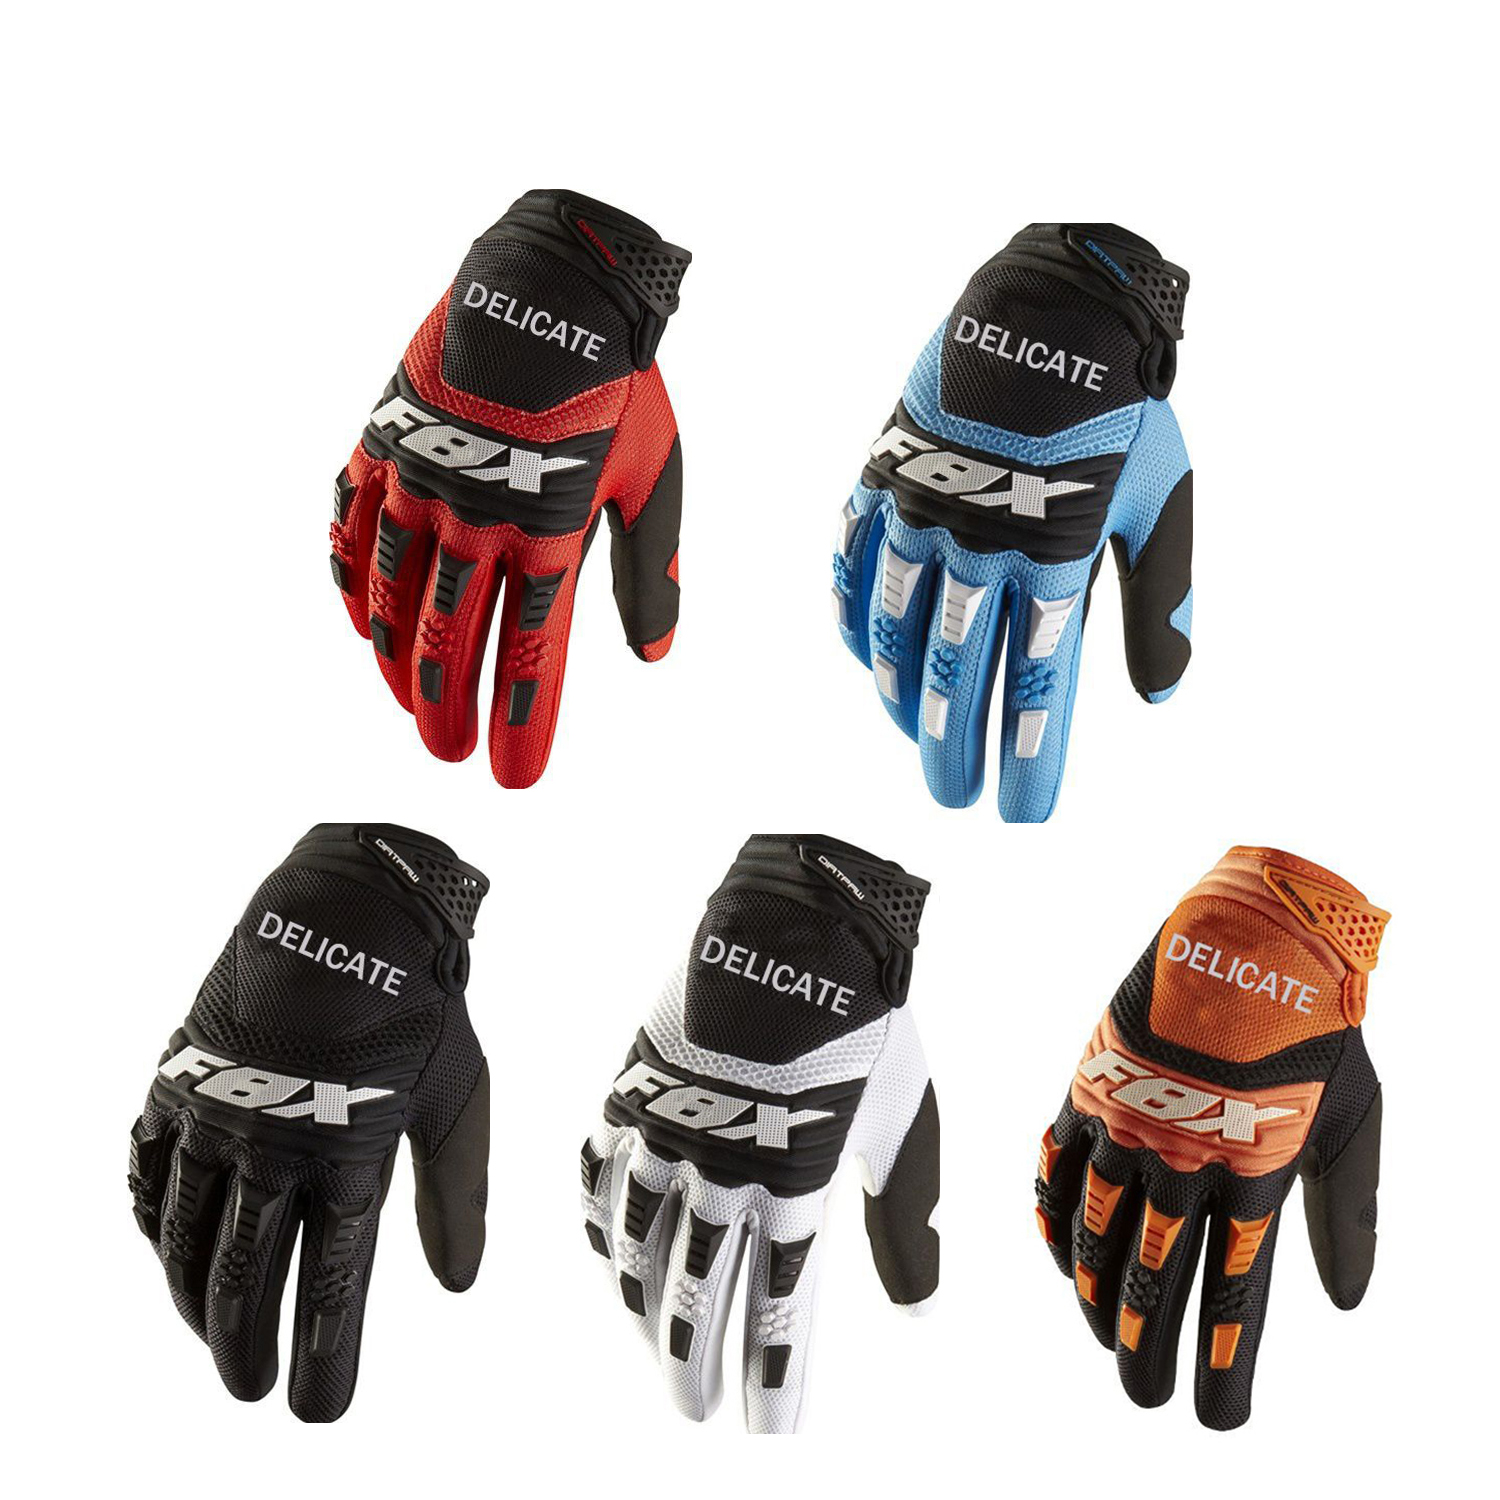 Hot Brand MX Motocross Gloves Motorcycle Racing Motorbike Riding Bike Gloves ATV MTB BMX Off Road Outdoor Sports Cycling Gloves